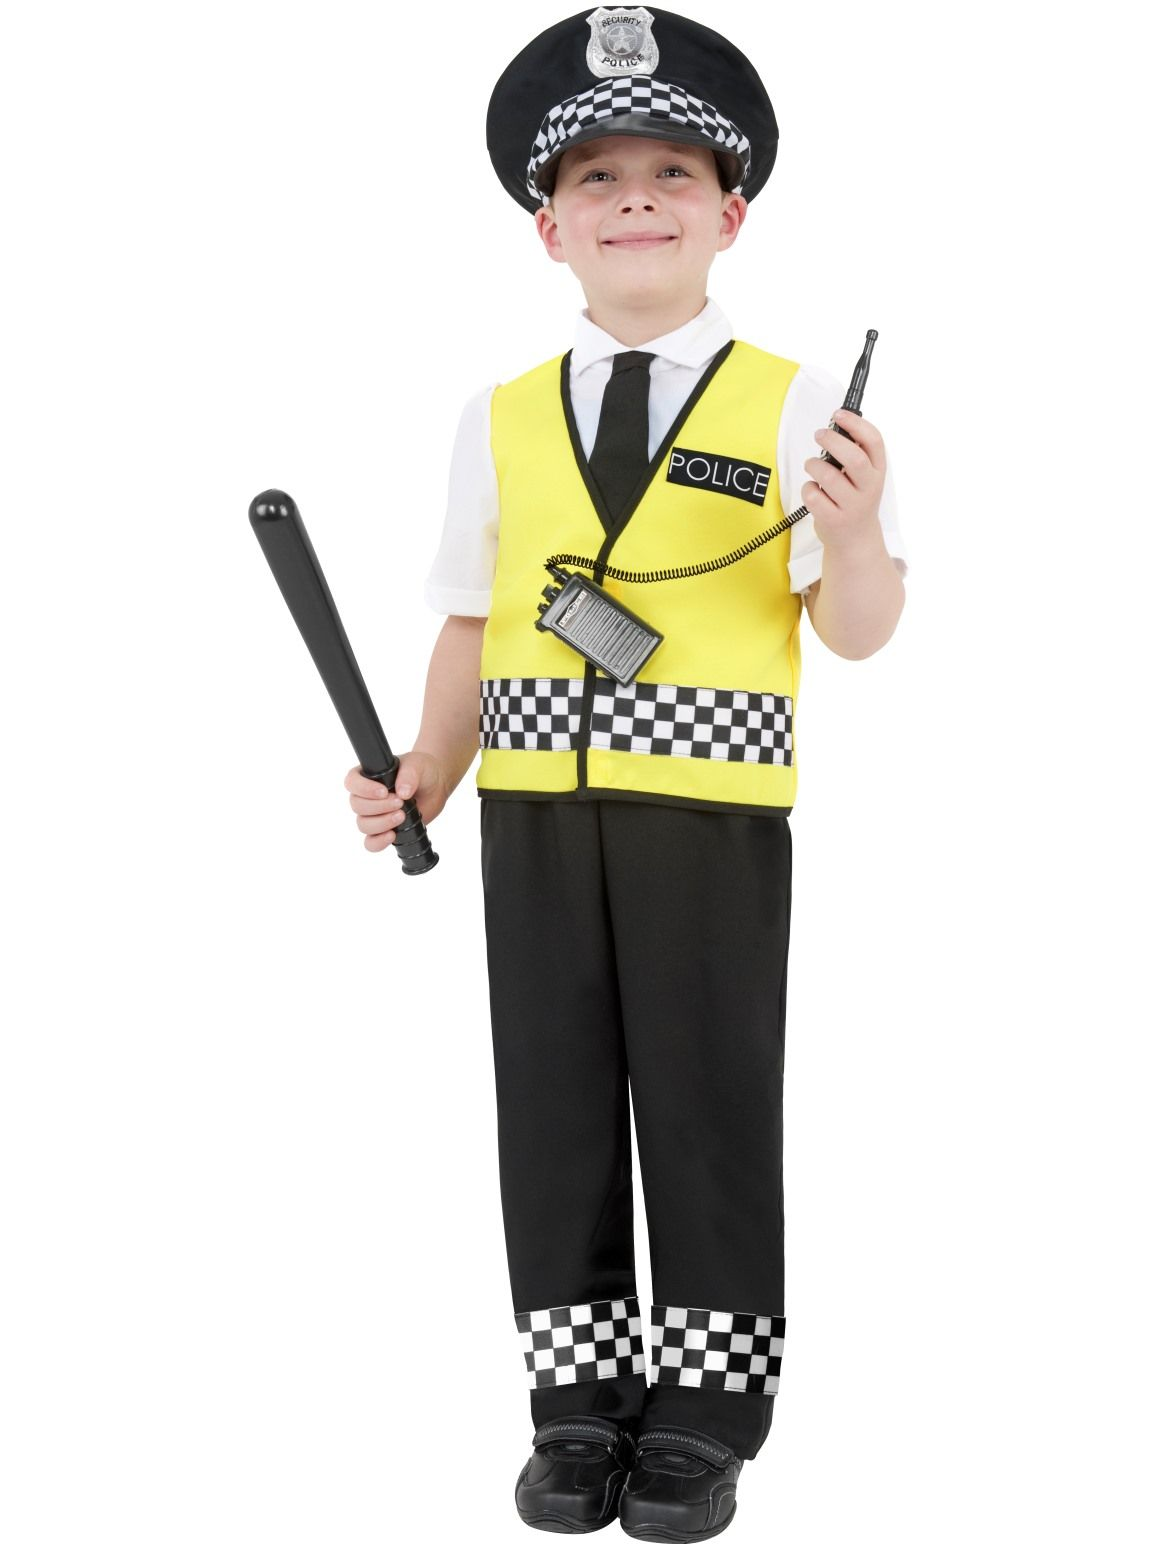 Police Child Costume - Buy